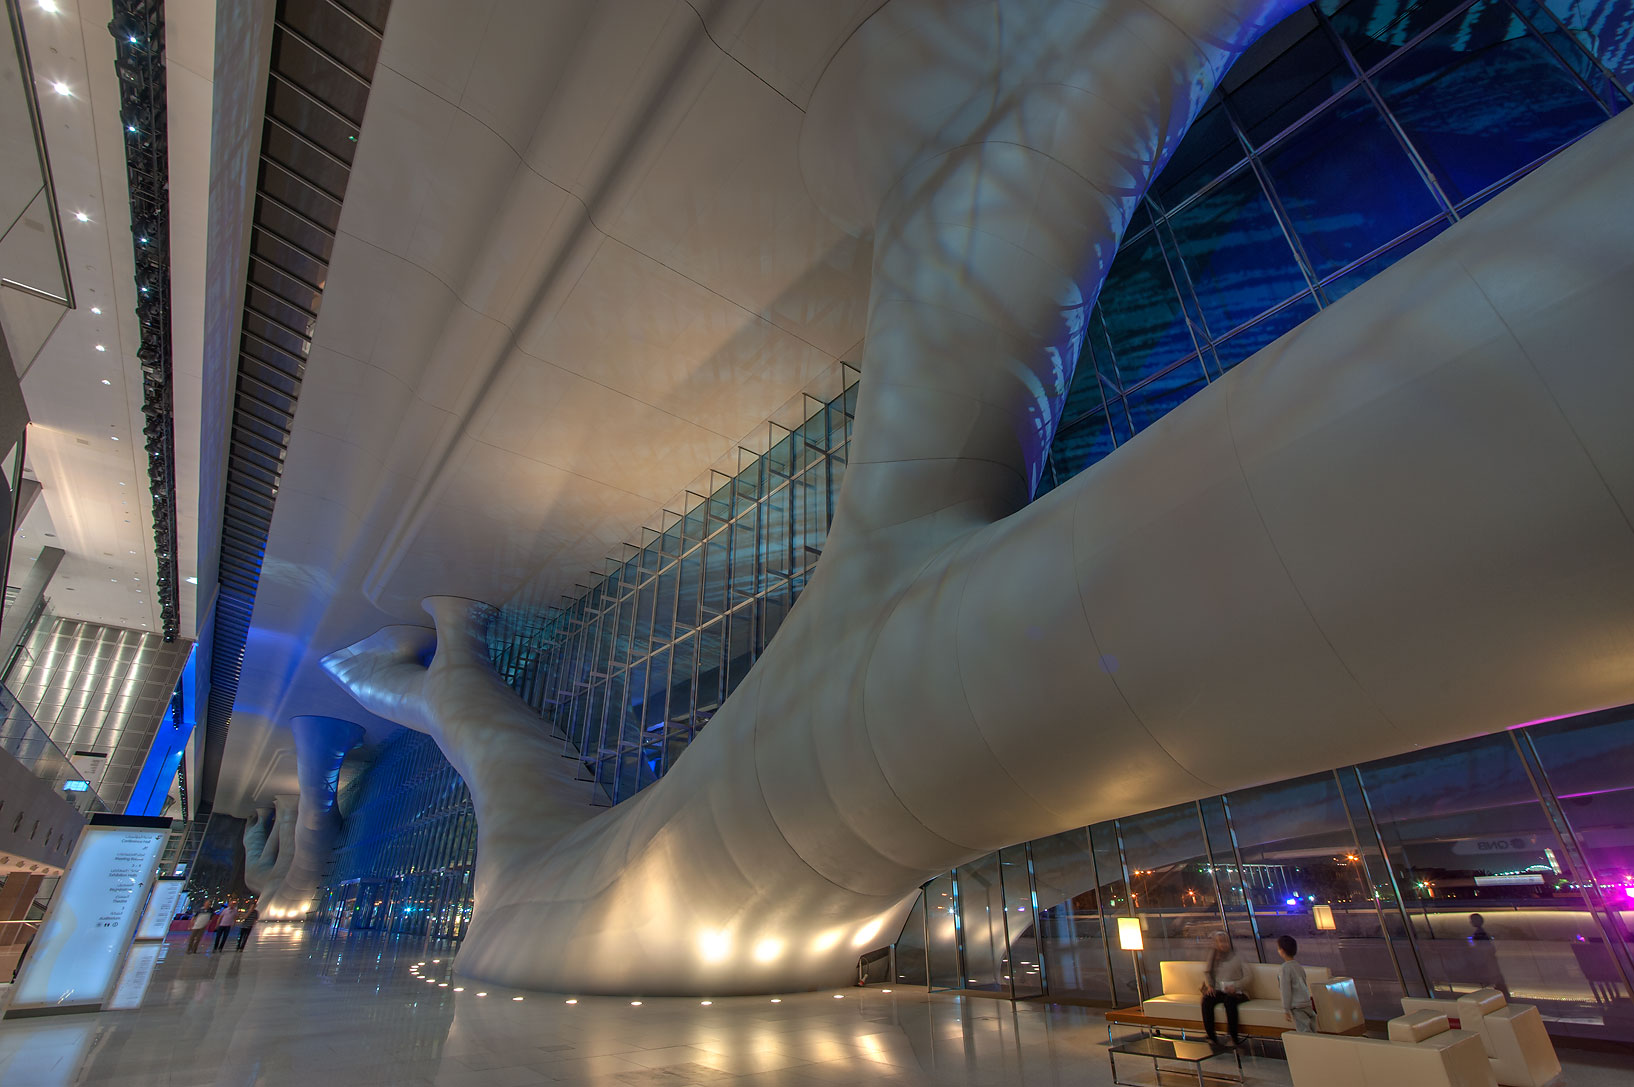 Entrance of National Convention Centre (QNCC...supporting the roof. Doha, Qatar